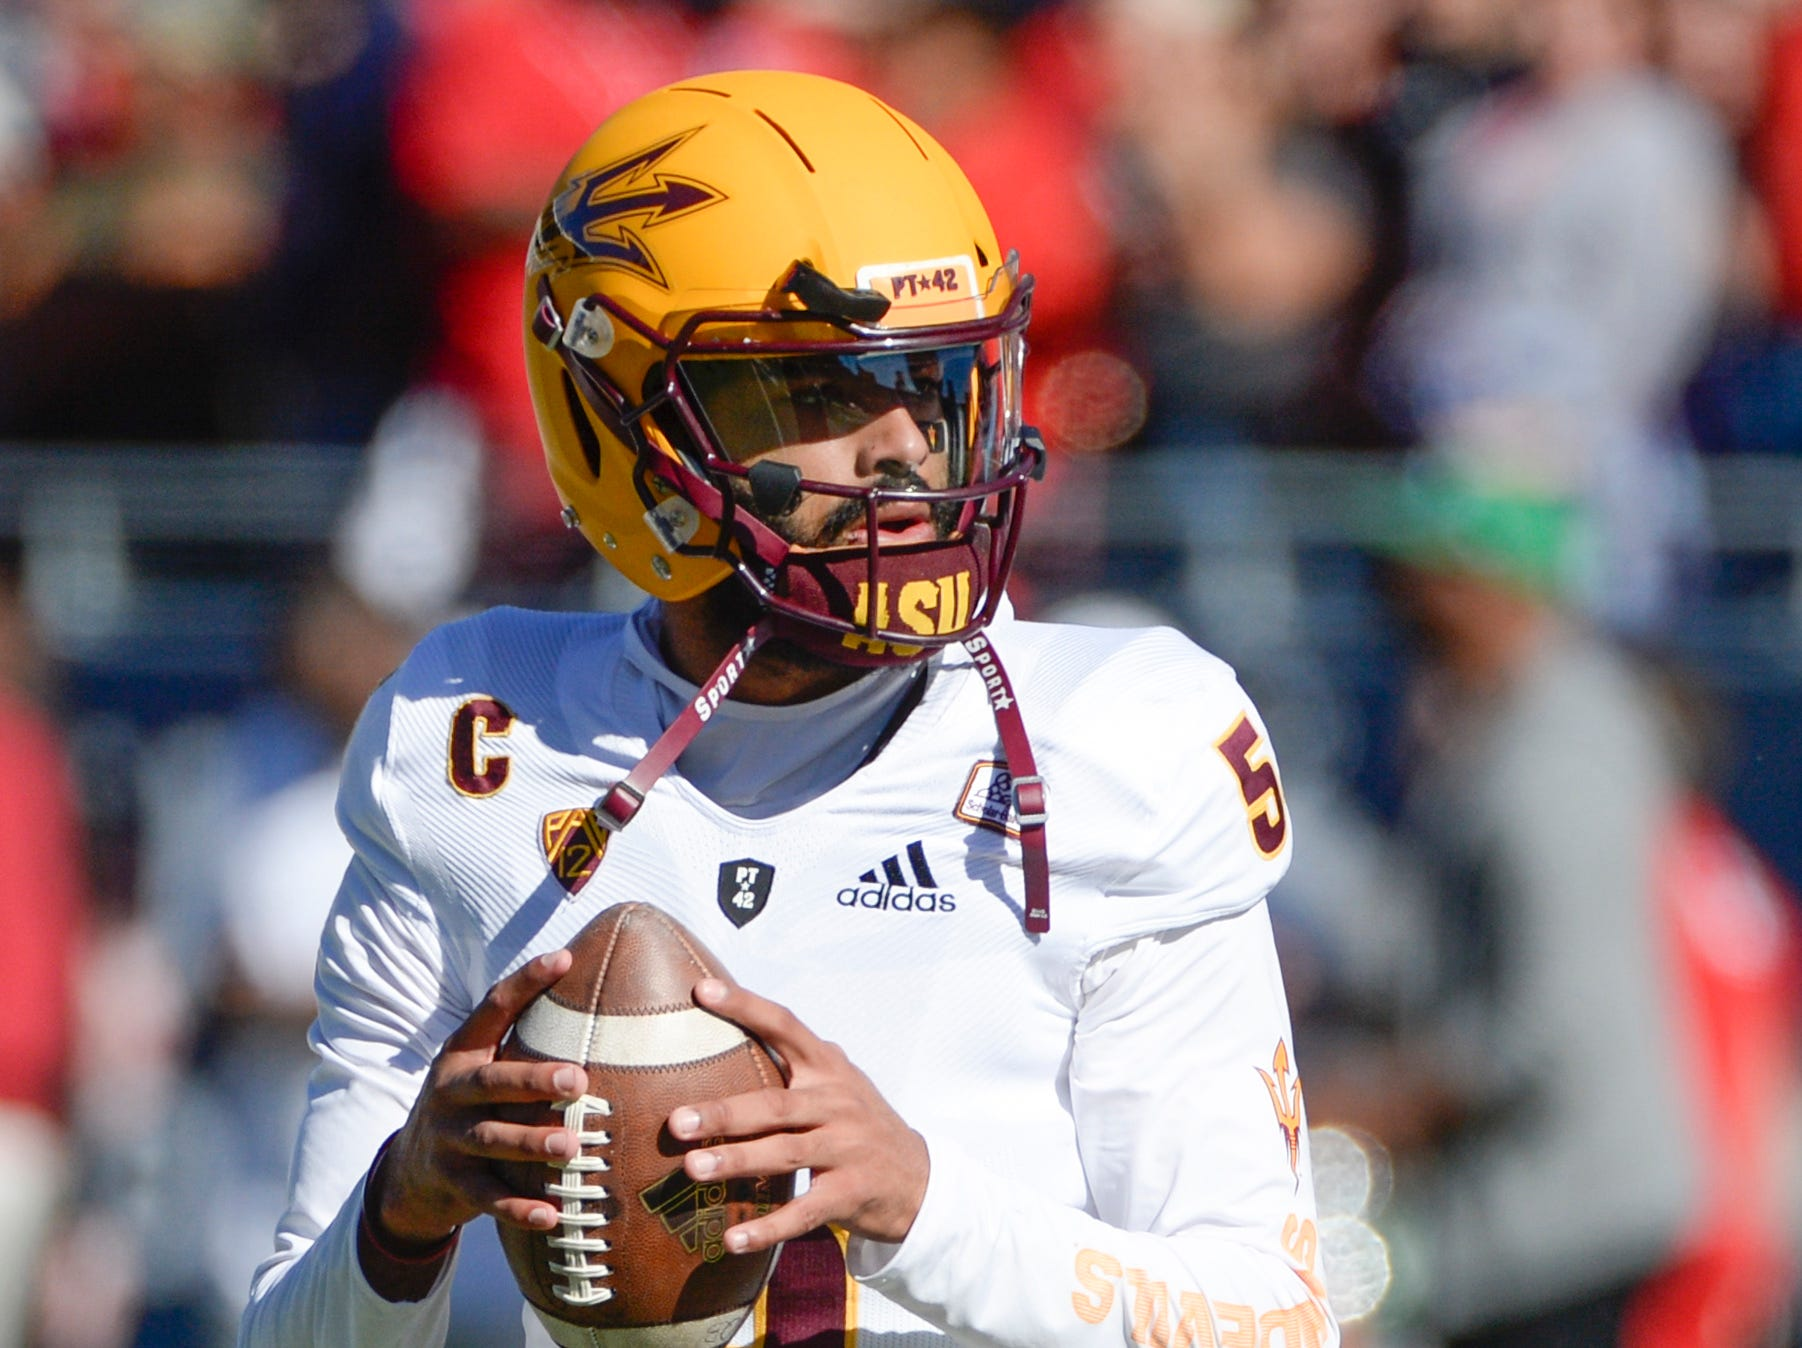 Nov 24, 2018; Tucson, AZ, USA; Arizona State Sun Devils quarterback Manny Wilkins (5) warms up before playing the Arizona Wildcats at Arizona Stadium. Mandatory Credit: Casey Sapio-USA TODAY Sports